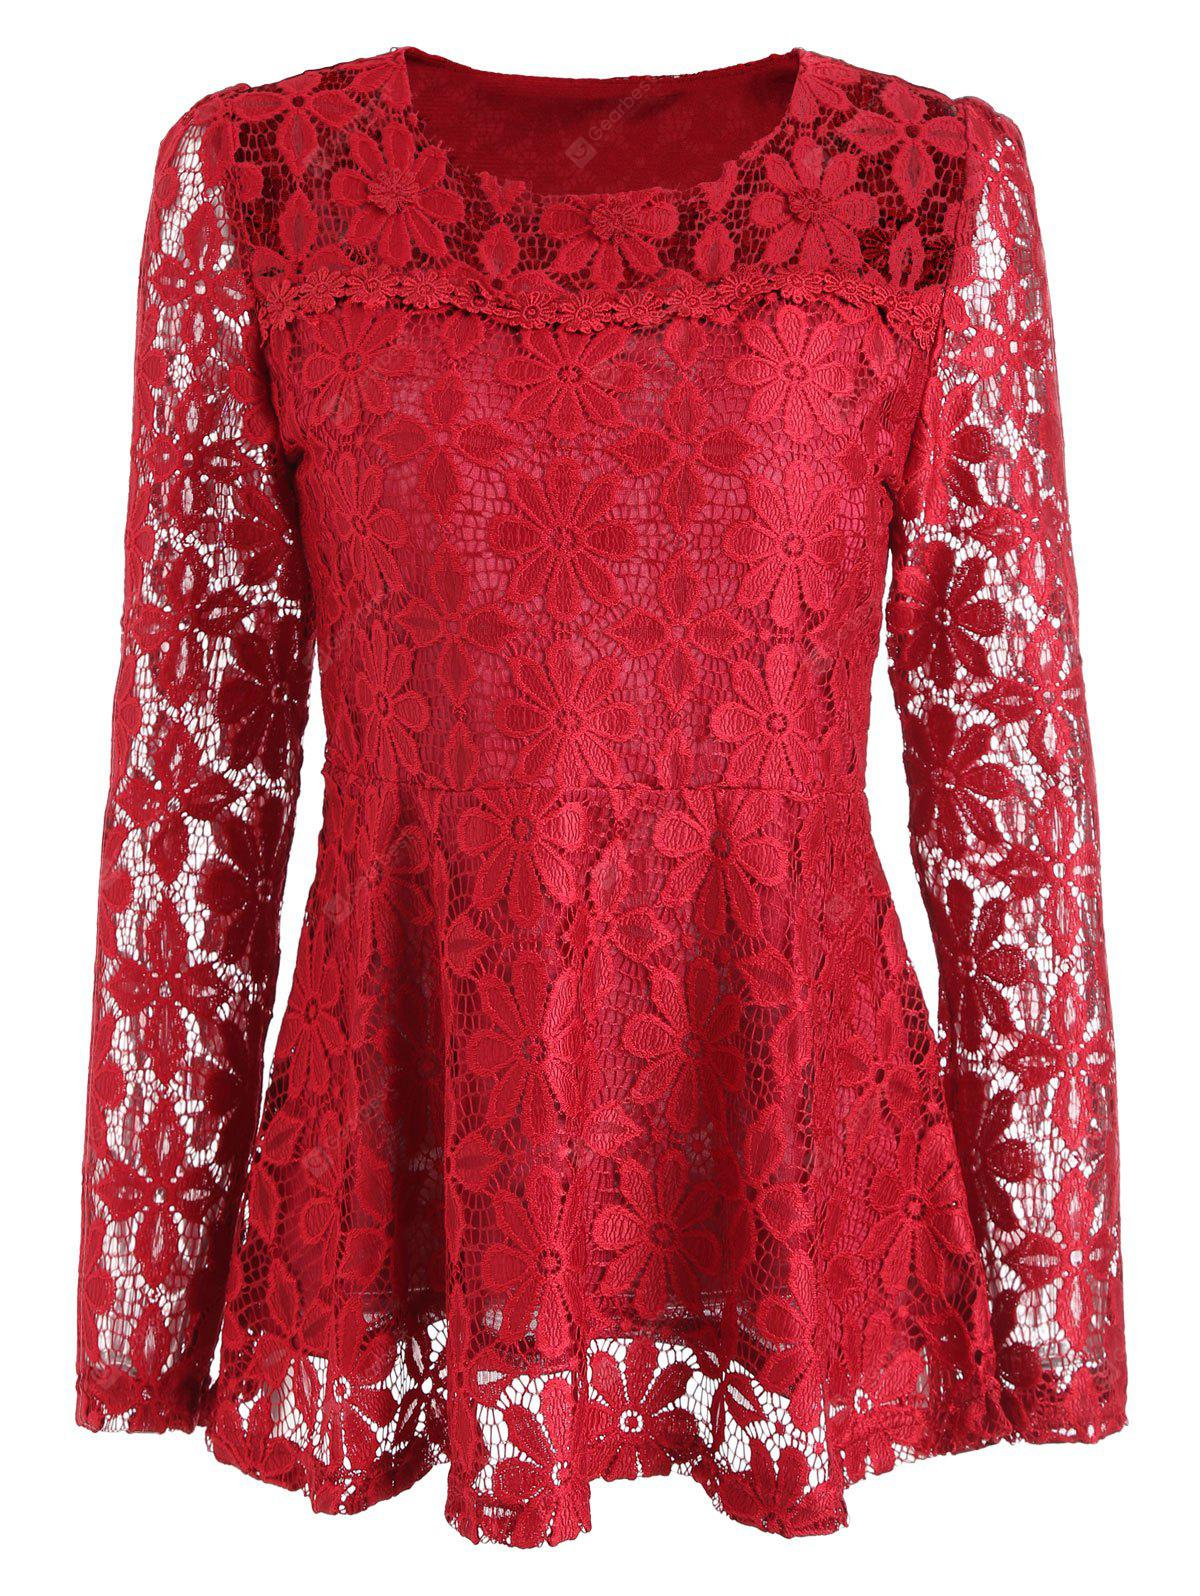 RED, Apparel, Women's Clothing, Blouses